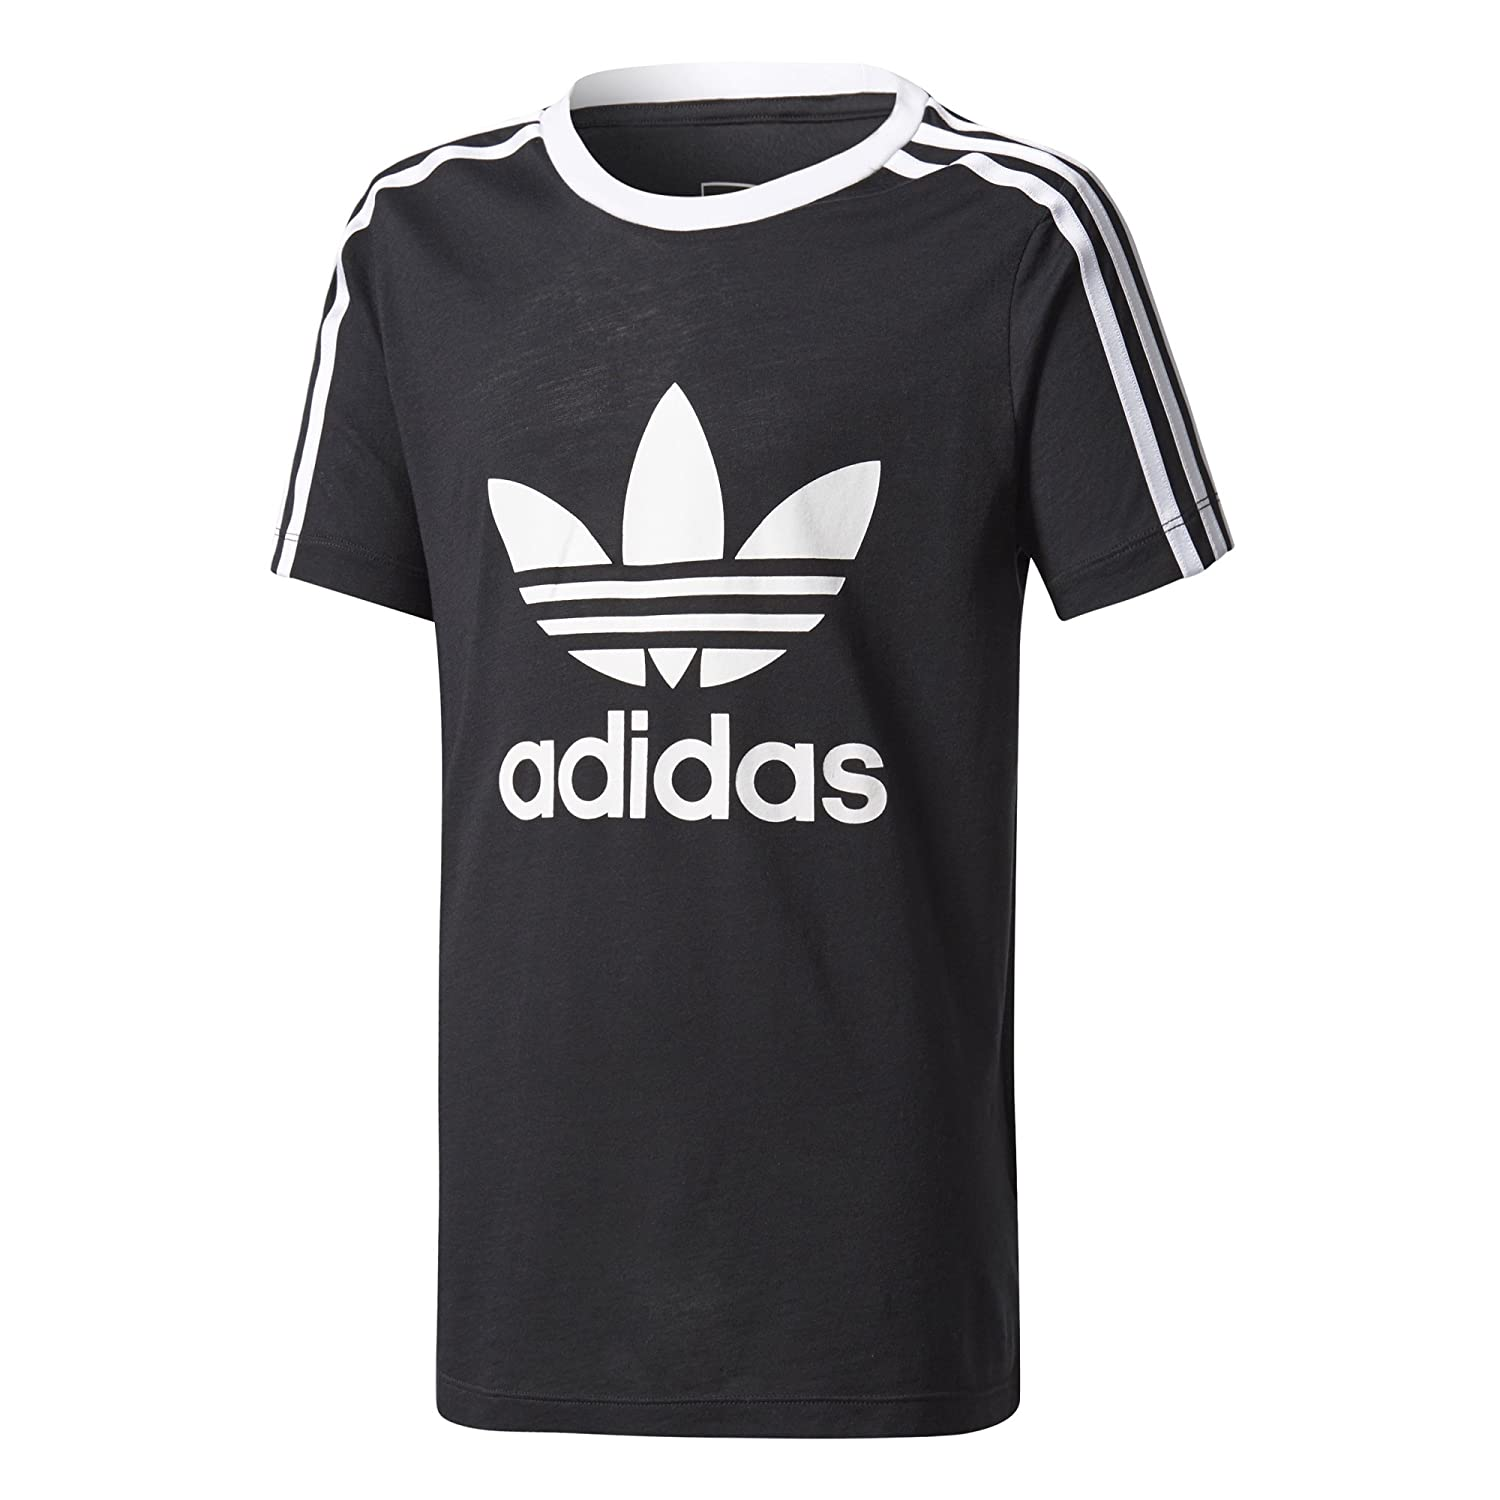 adidas Originals Girl's 3-Stripes Trefoil Tee BQ3945